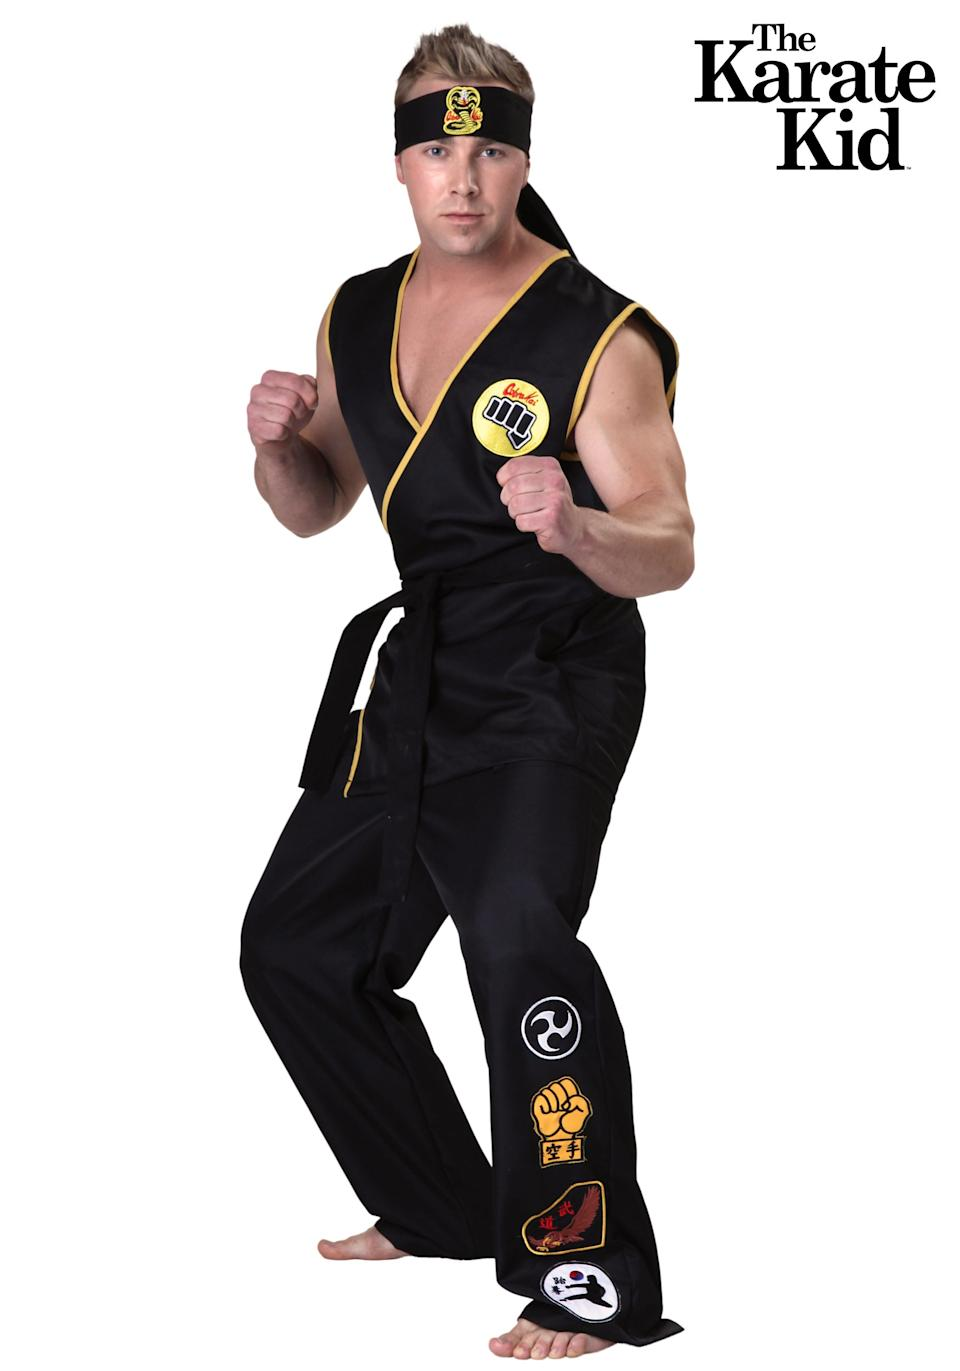 Cobra Kai Costume. Photo via halloweencostumes.com